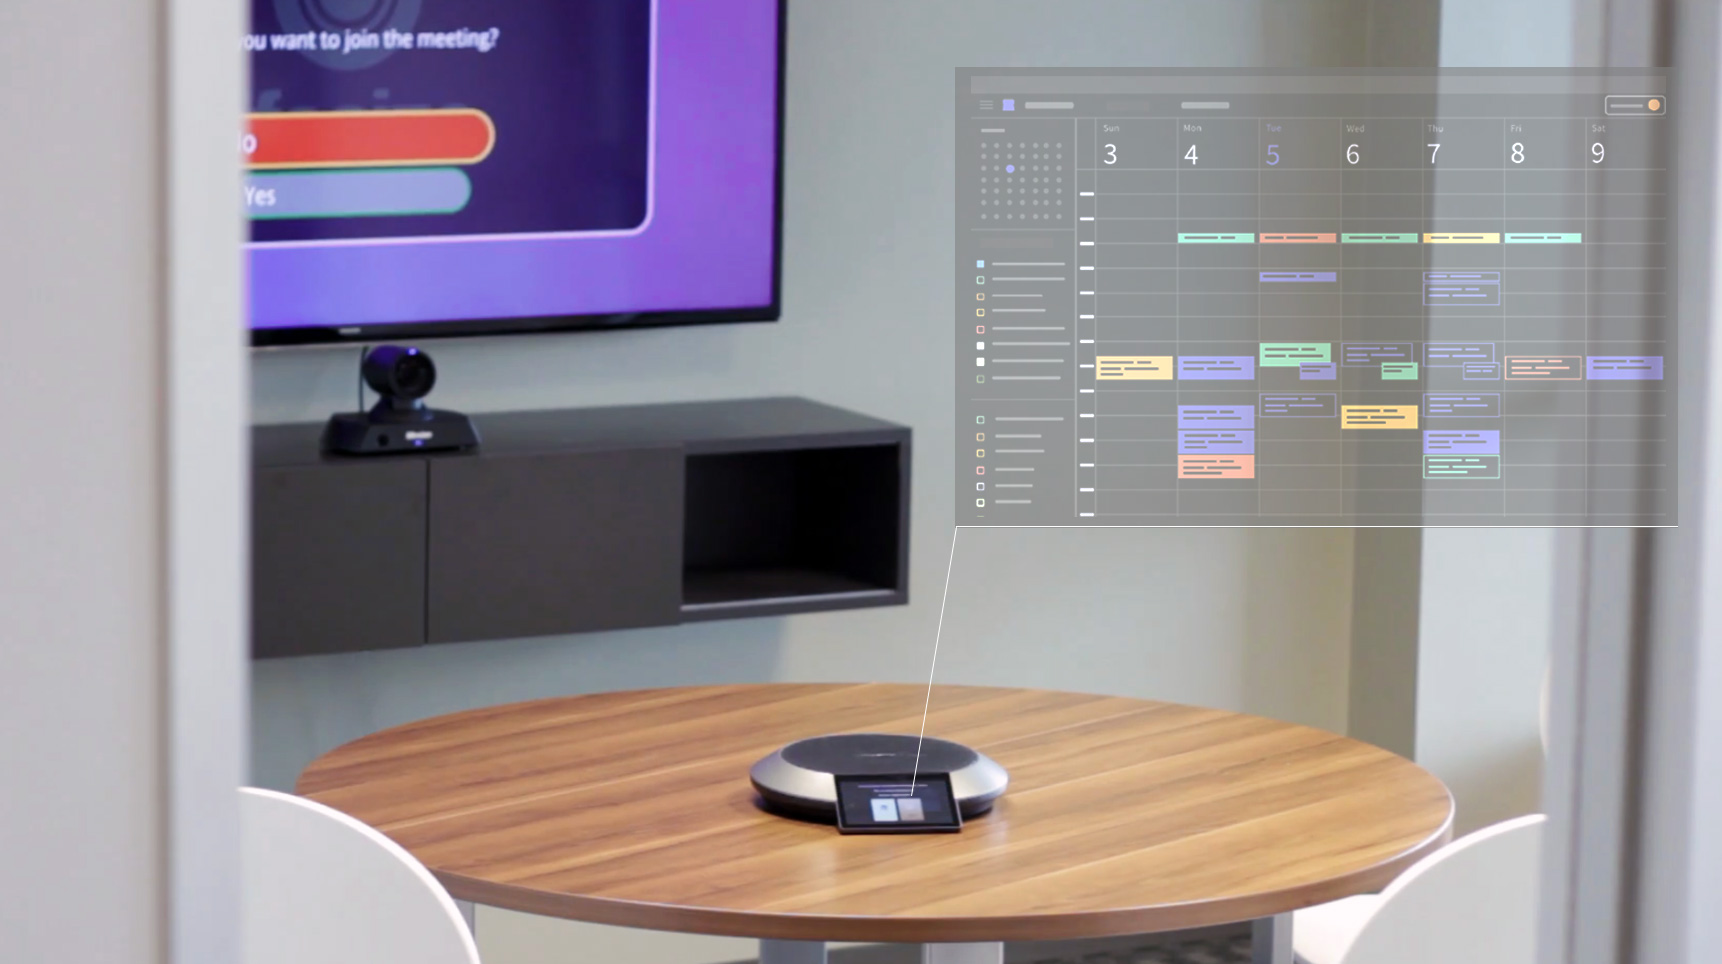 Having conference room scheduling issues? Avoid double-bookings, delays and equipment blunders with these five tips, plus the right software to keep you connected.